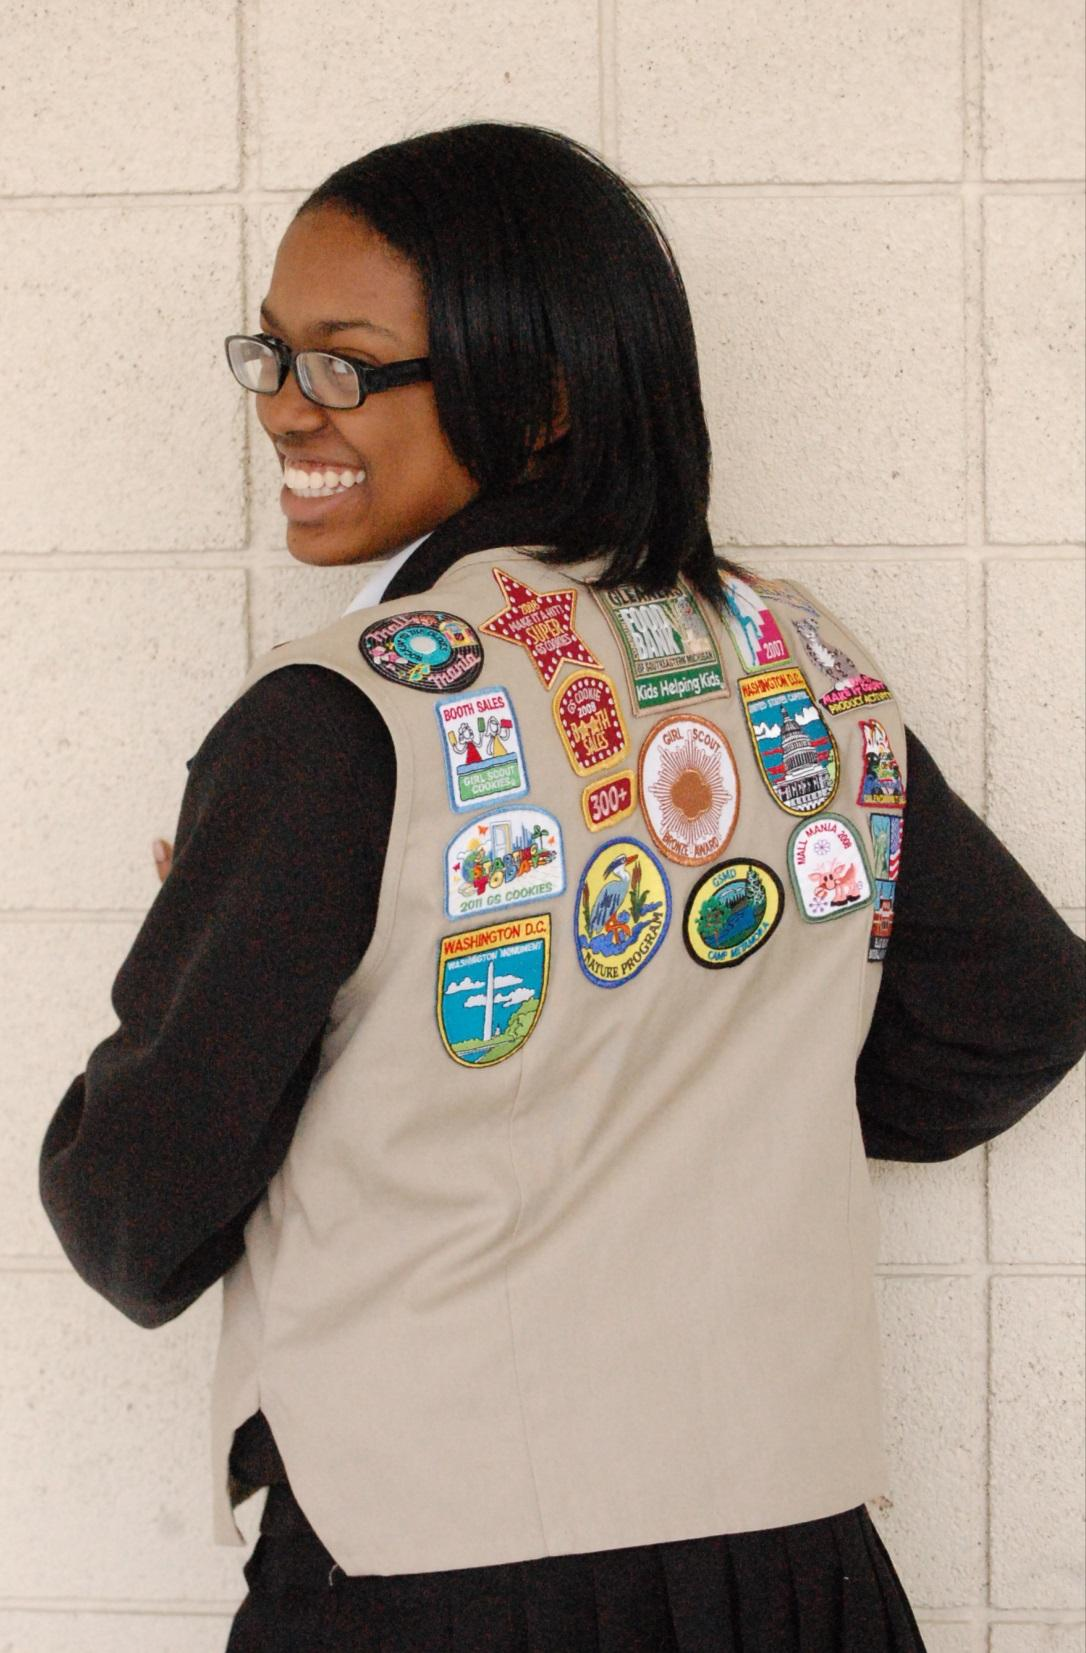 Williams, an Ambassador Girl Scout, has earned various patches recognizing achievements ranging from service at Gleaners Food Bank to selling over 300 boxes of Girl Scout cookies.